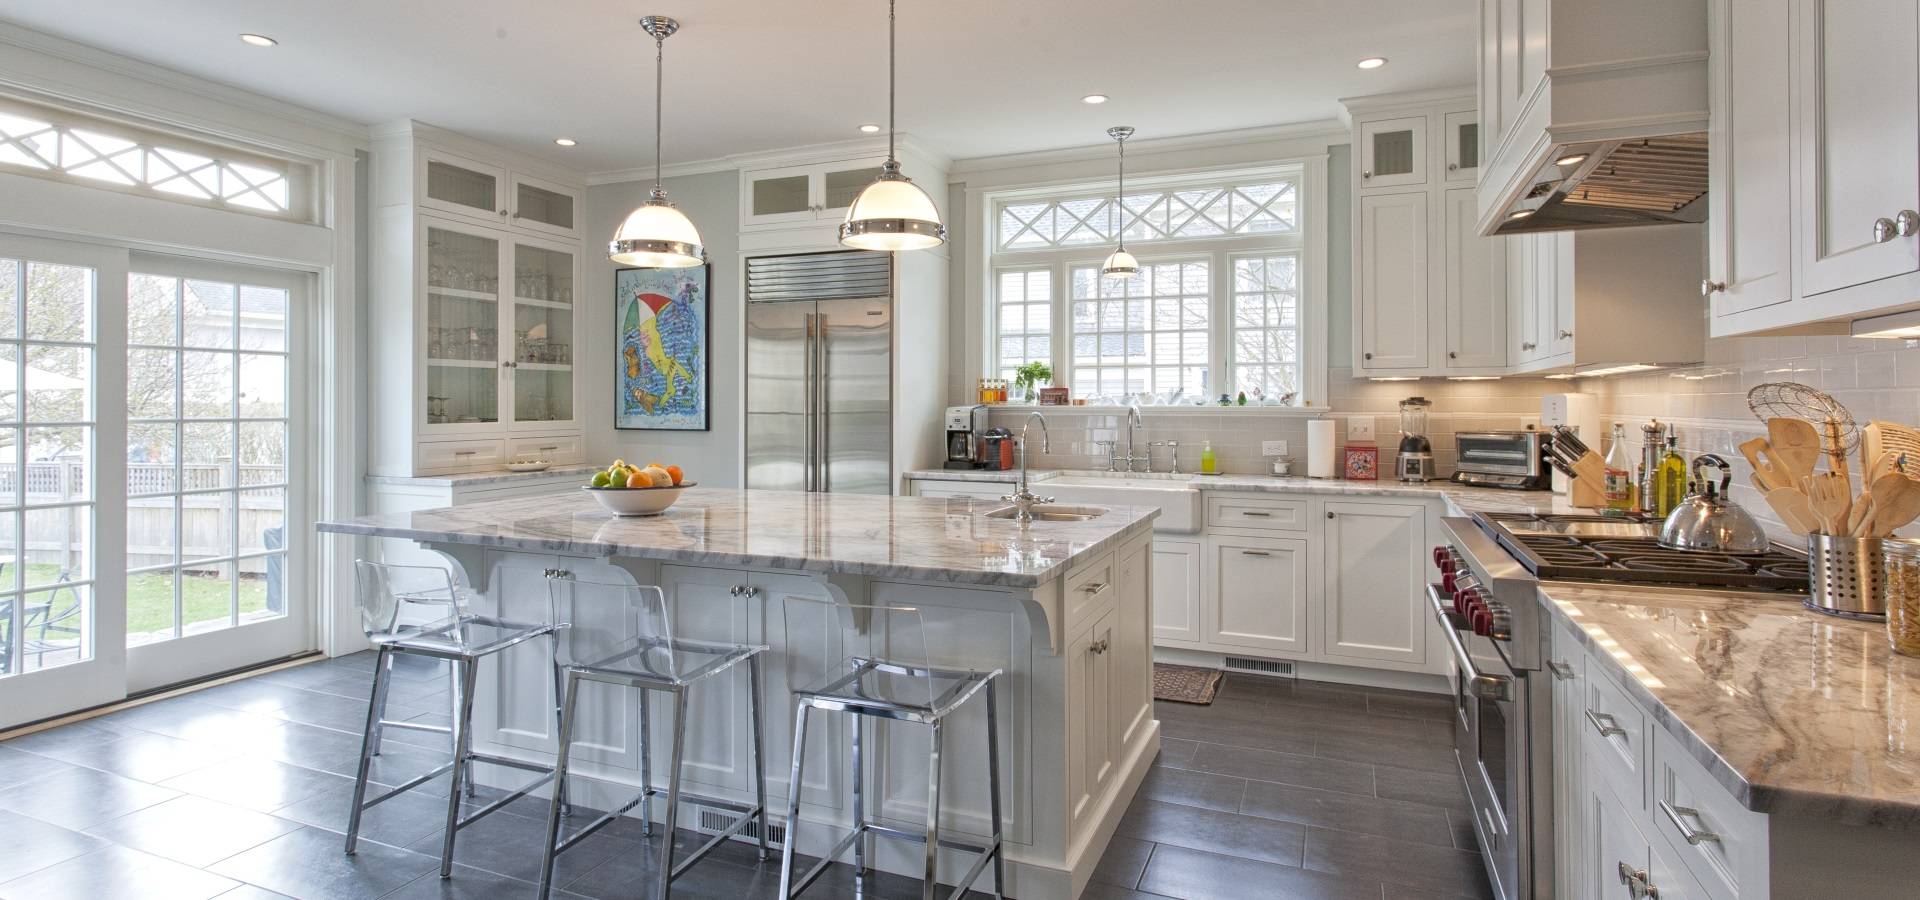 Kitchen cabinets ridgefield nj - Ridgefield Ct